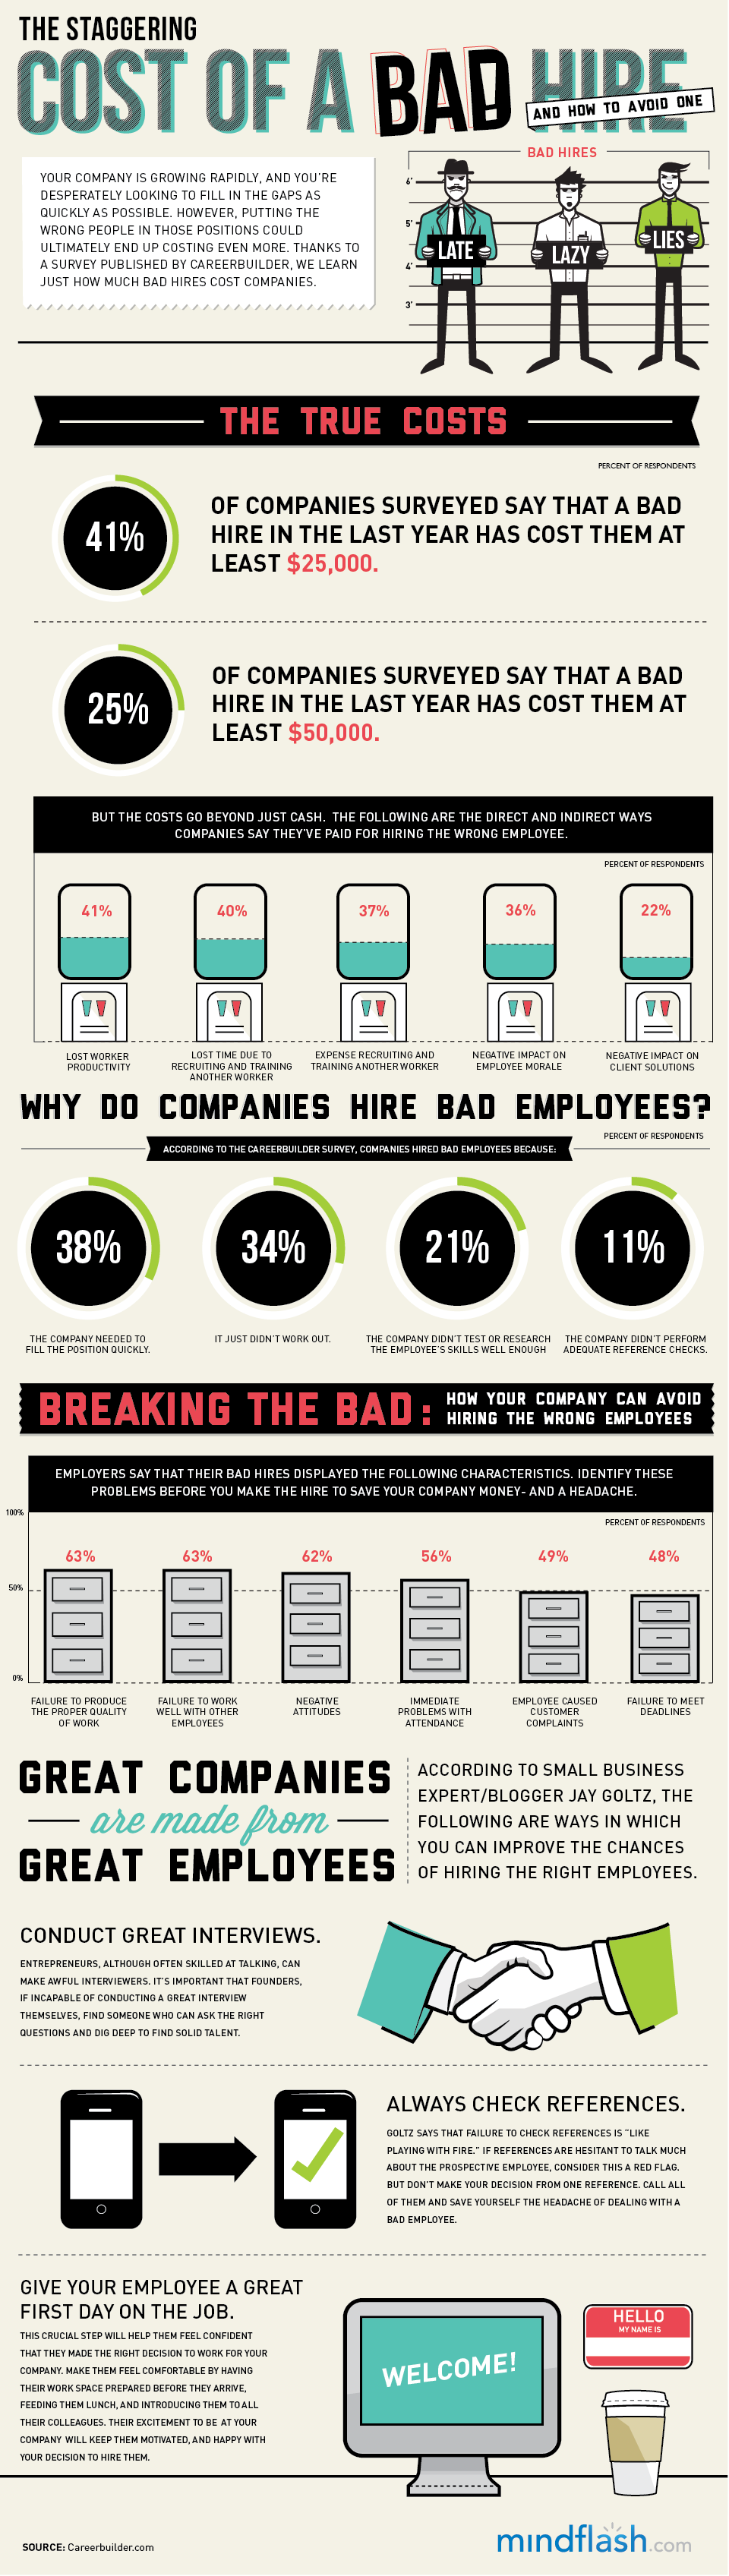 How Much A Bad Hire Cost